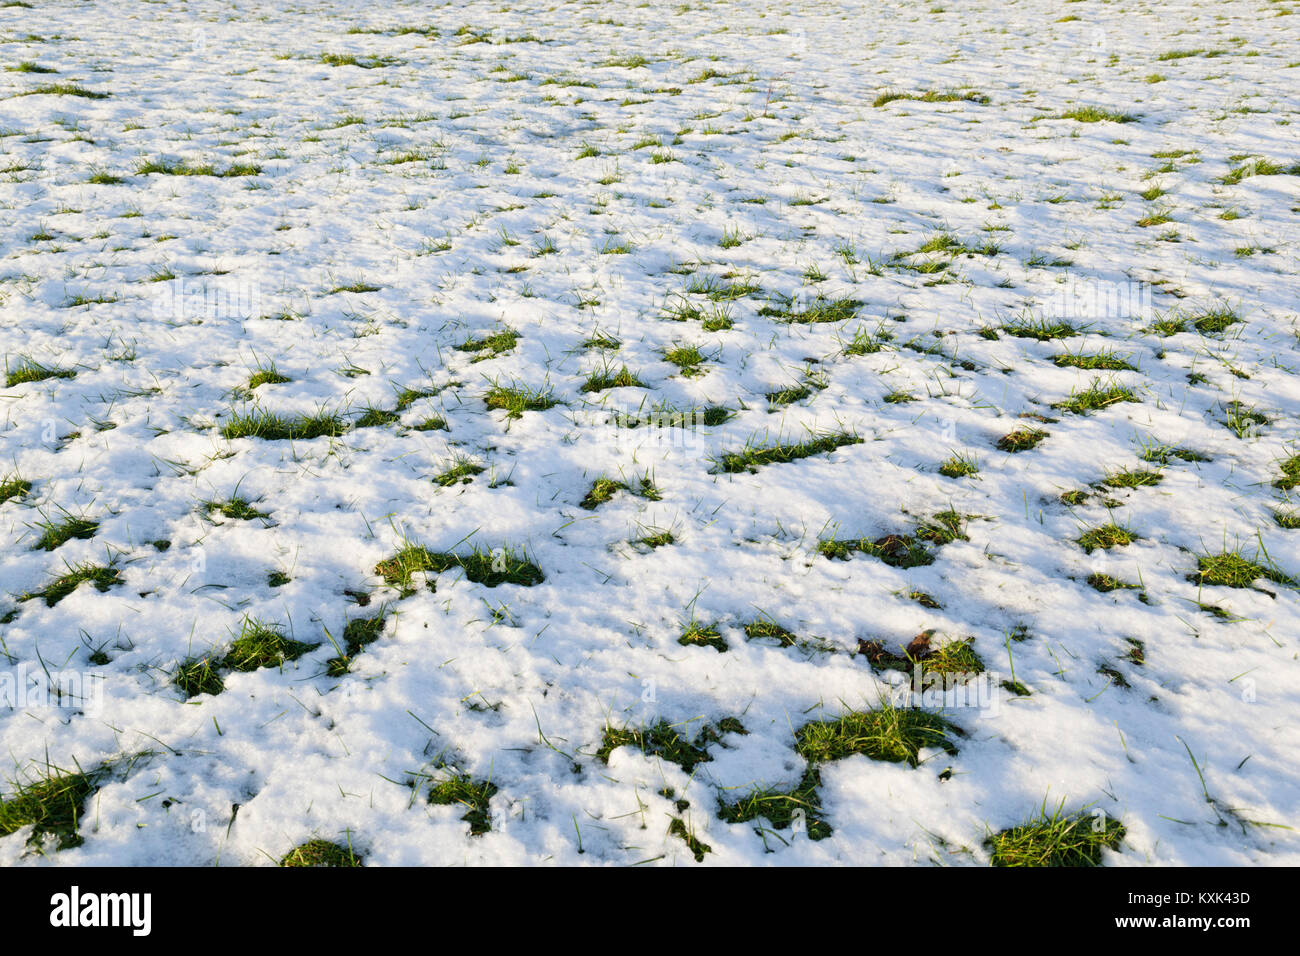 Melting snow with green grass patches poking through, Gloucestershire, England, United Kingdom, Europe - Stock Image